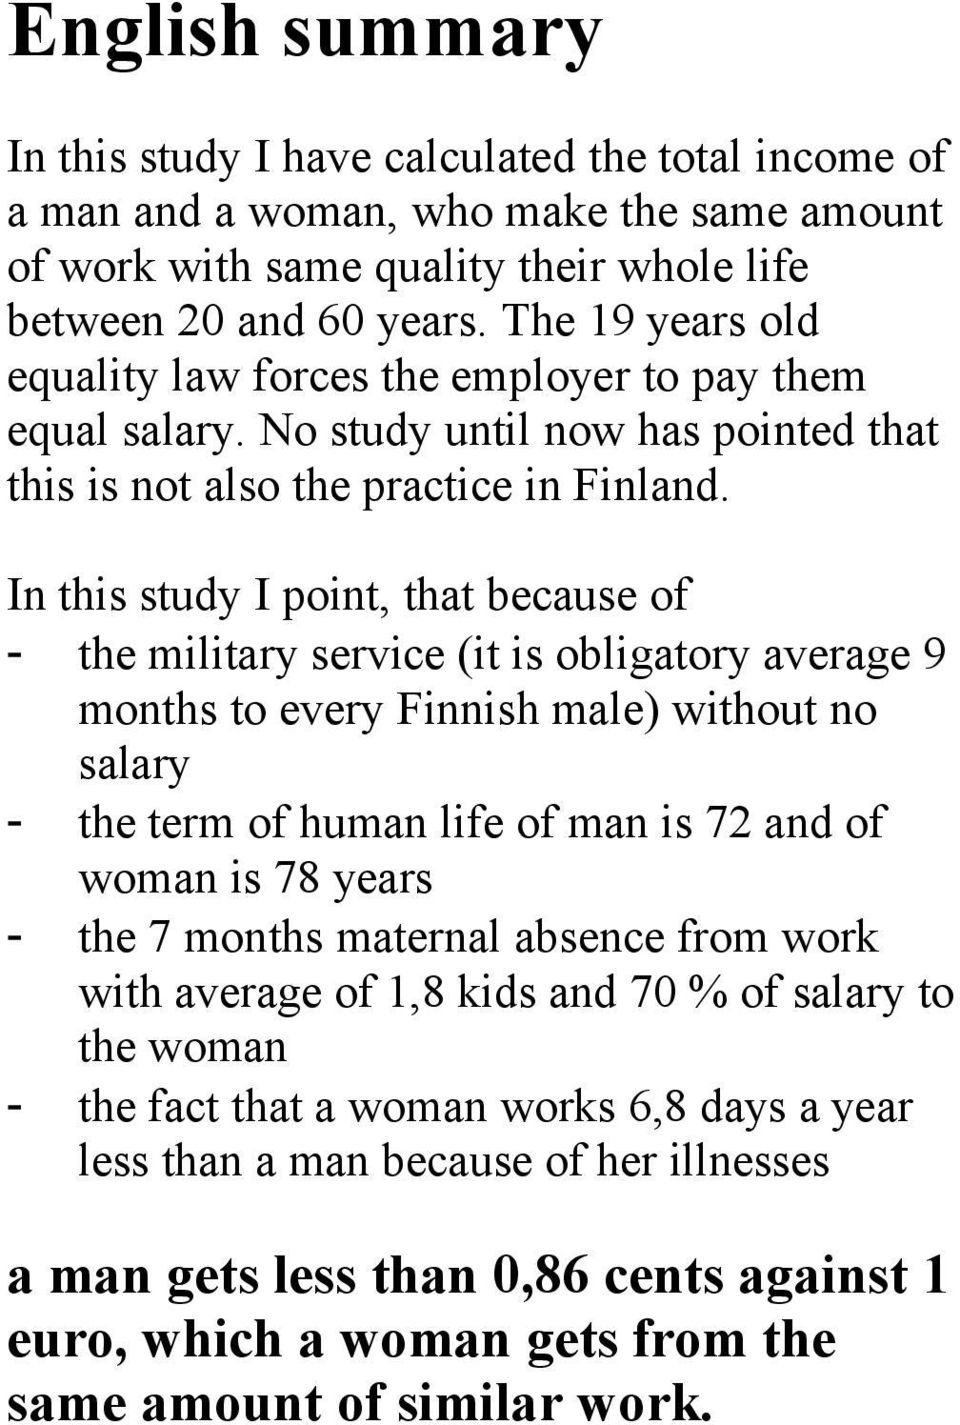 In this study I point, that because of - the military service (it is obligatory average 9 months to every Finnish male) without no salary - the term of human life of man is 72 and of woman is 78